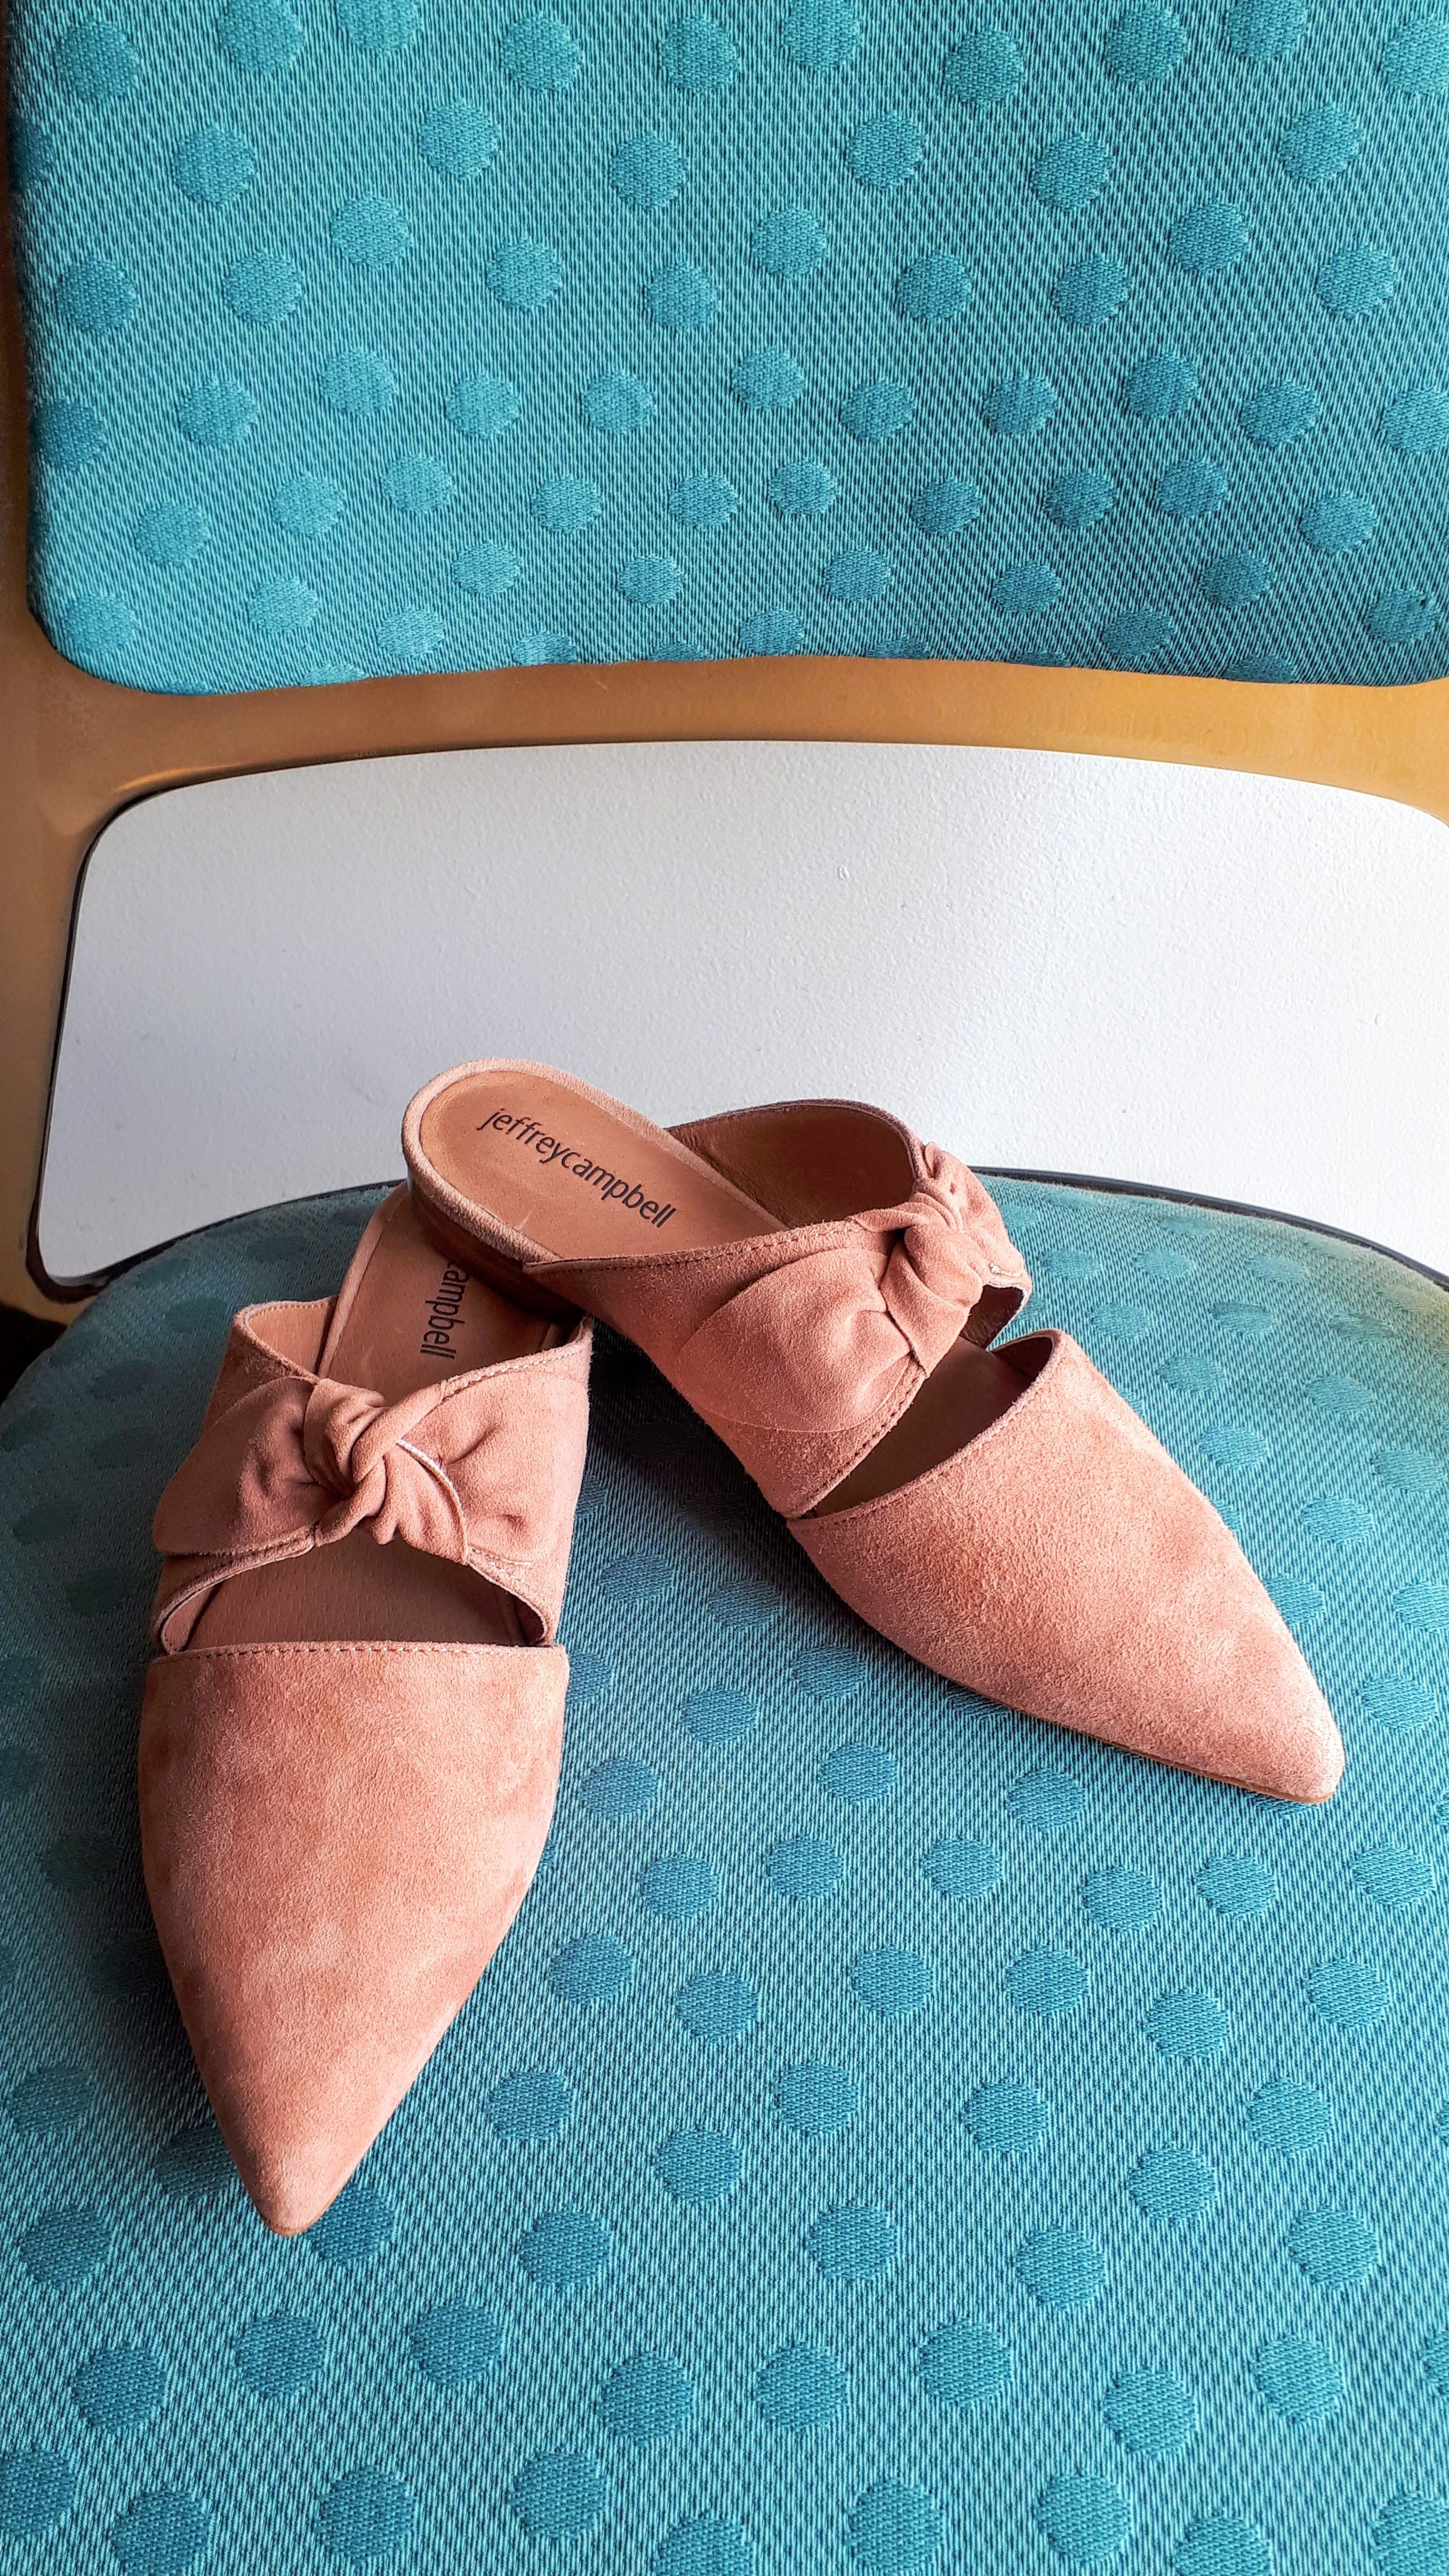 Jeffrey Campbell shoes; S6.5, $68